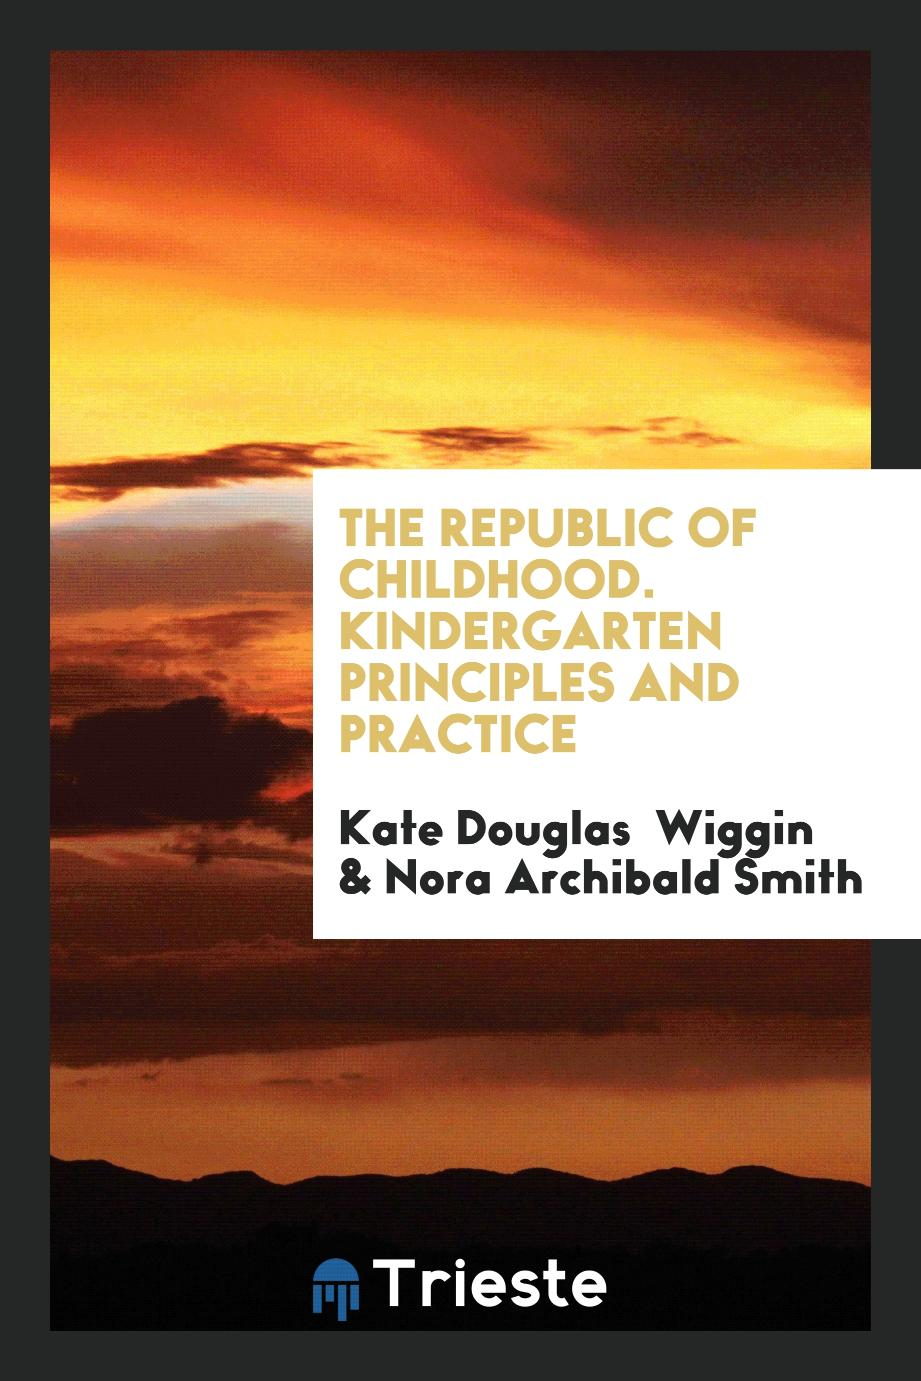 Kate Douglas Wiggin, Nora Archibald Smith - The republic of childhood. Kindergarten principles and practice